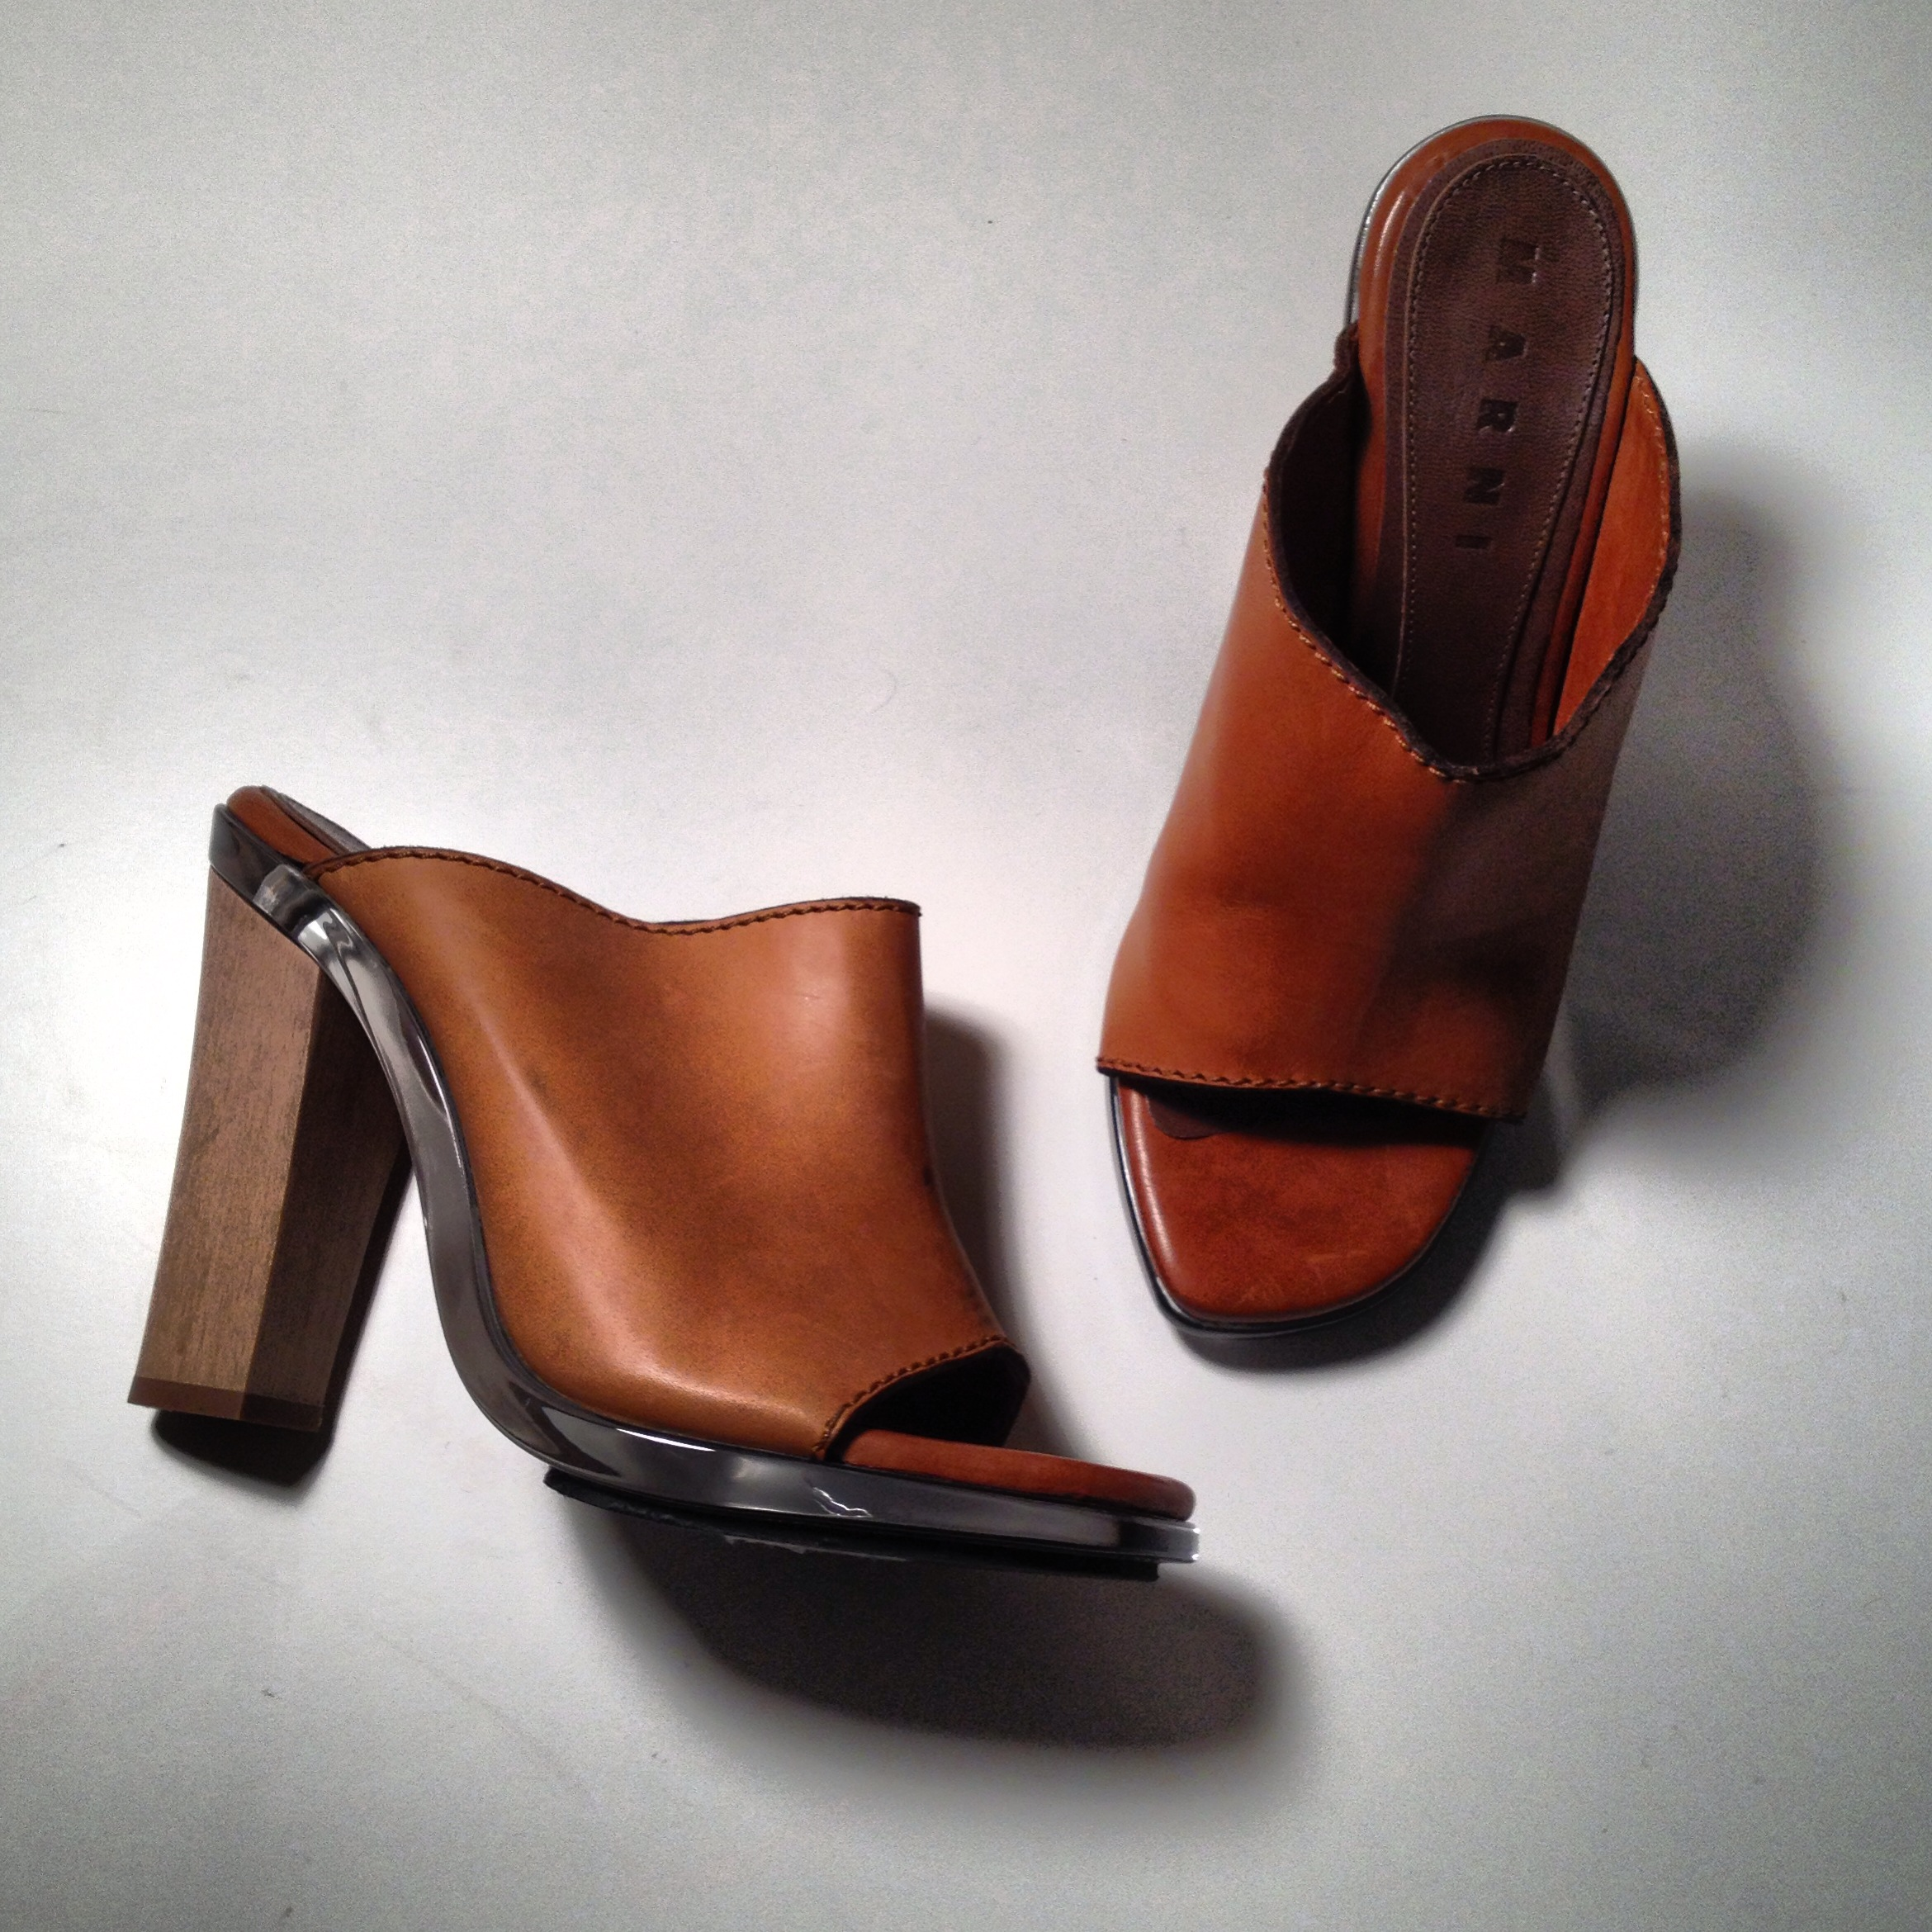 Wood, Lucite and Leather Marni Sandals | DeSmitten Design Blog